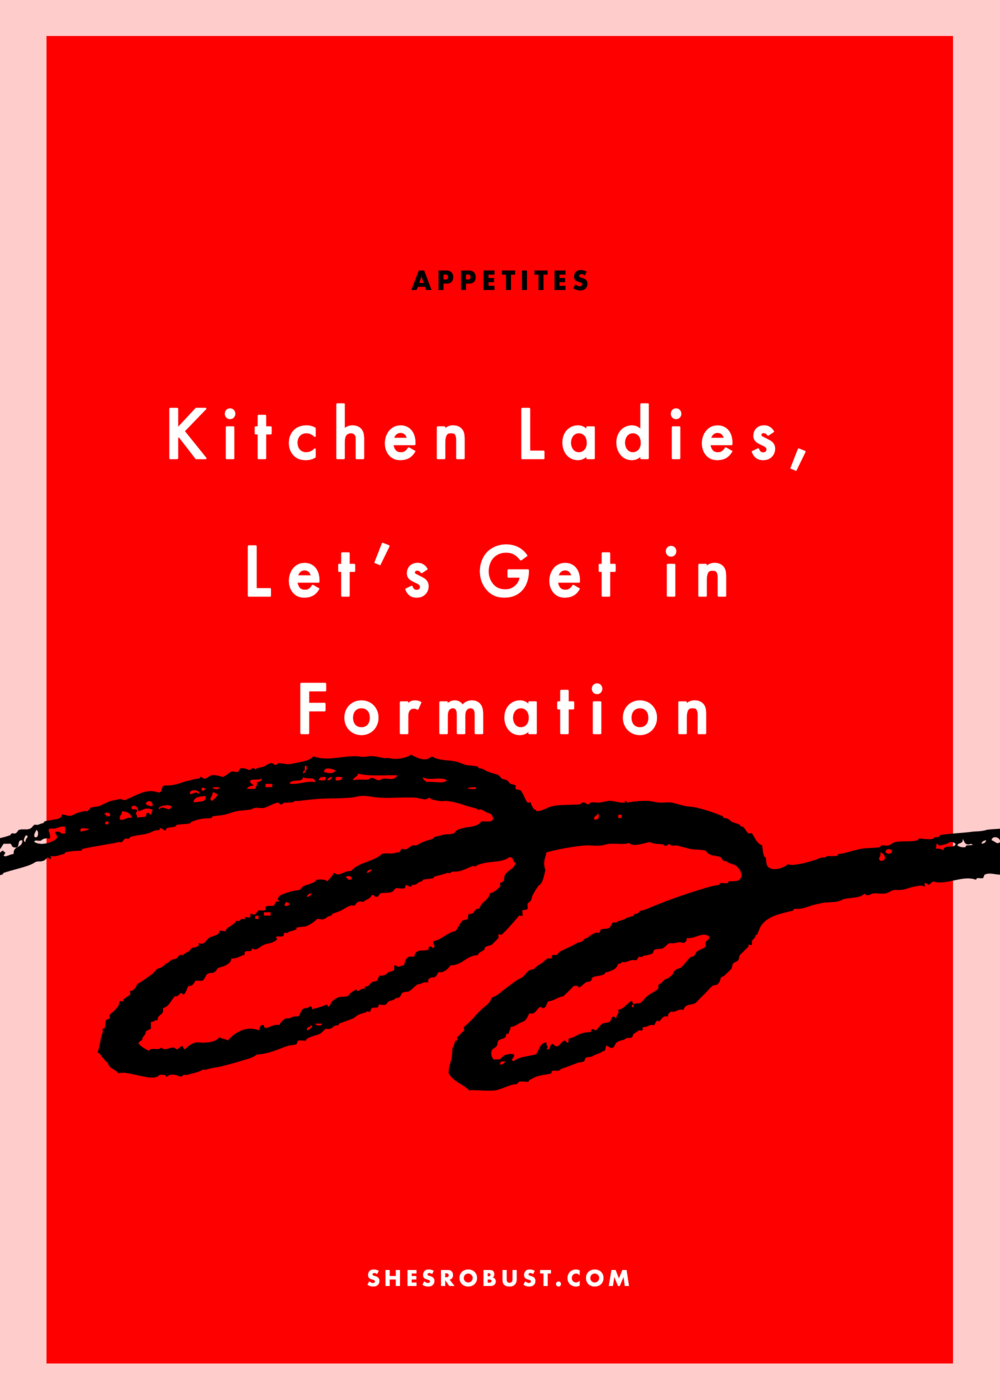 KitchenLadies.png